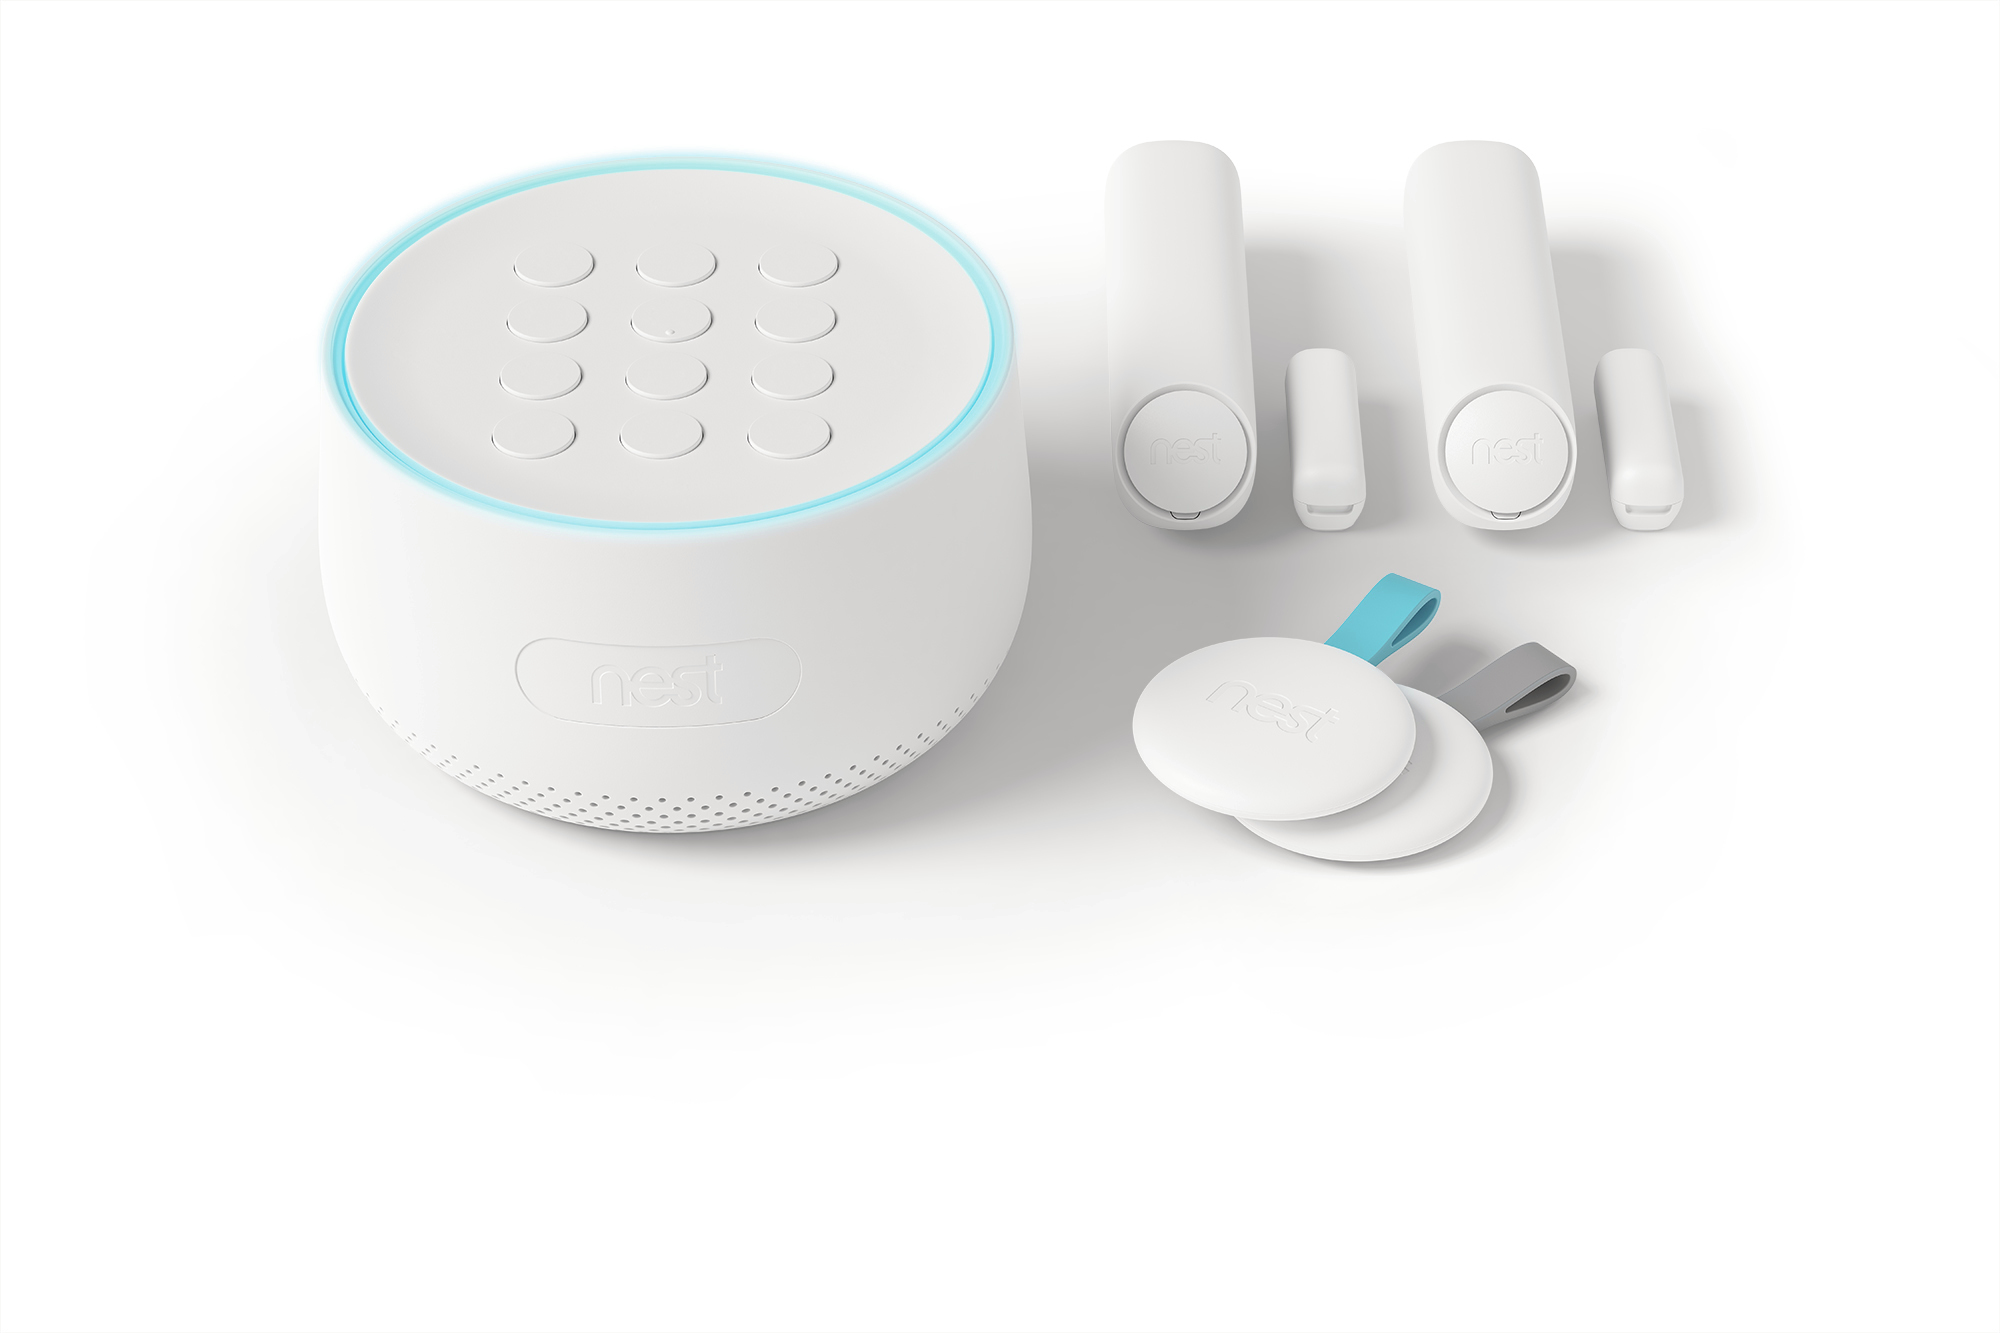 Nest Expands Smart Home Security Product Line Custom